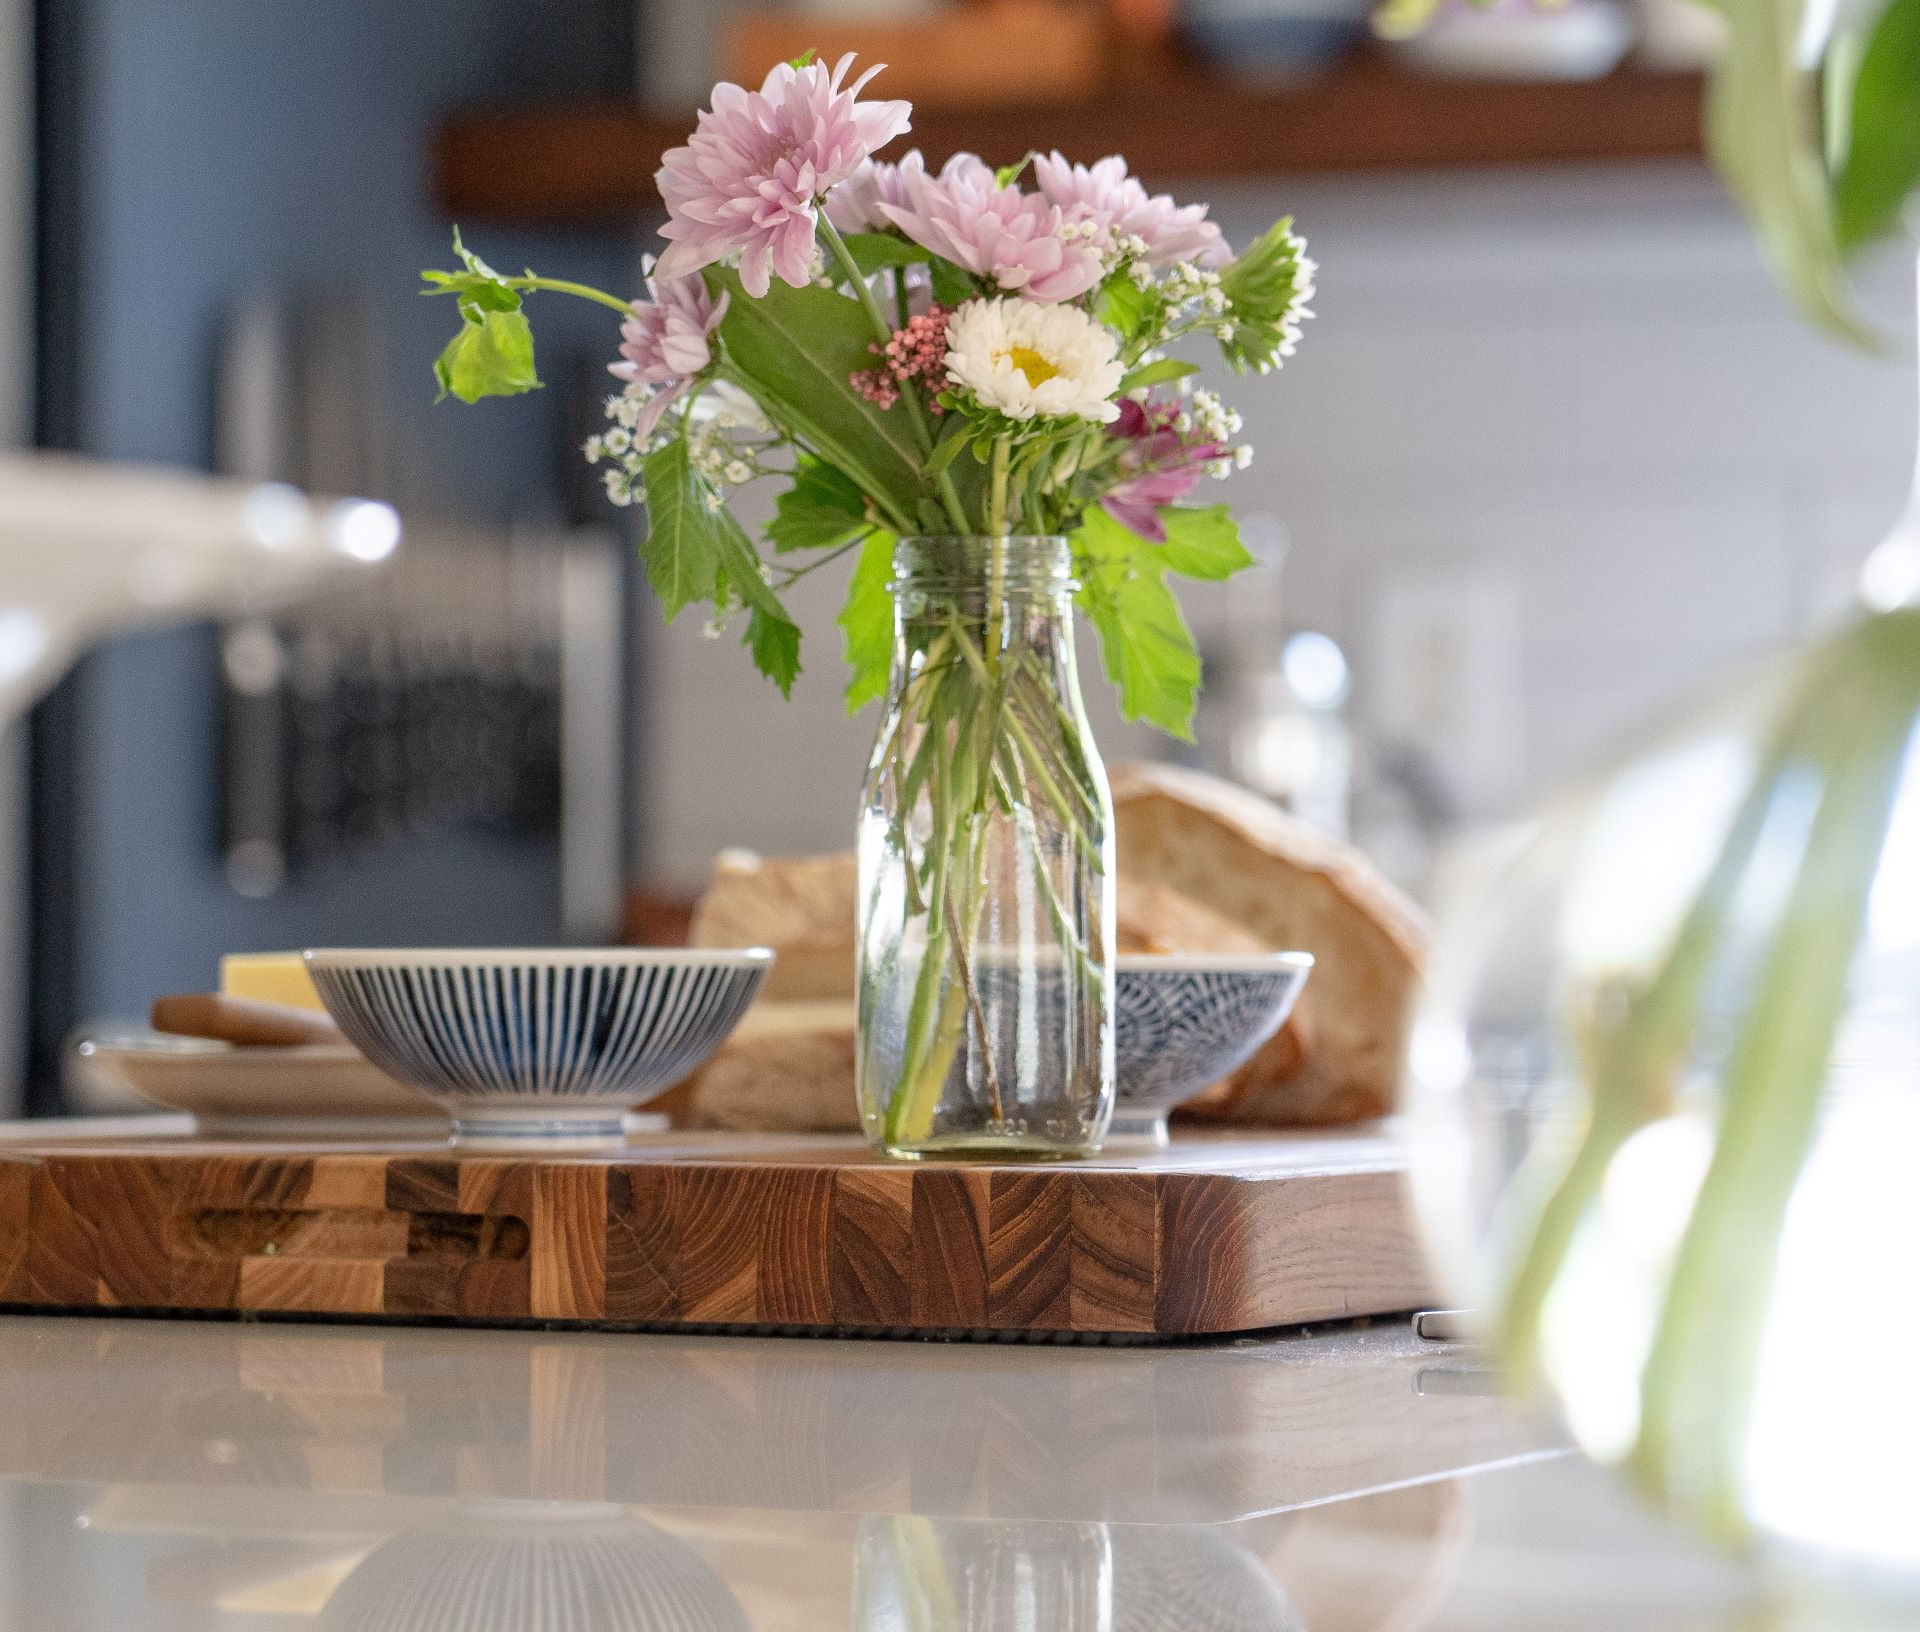 kitchen details and flowers